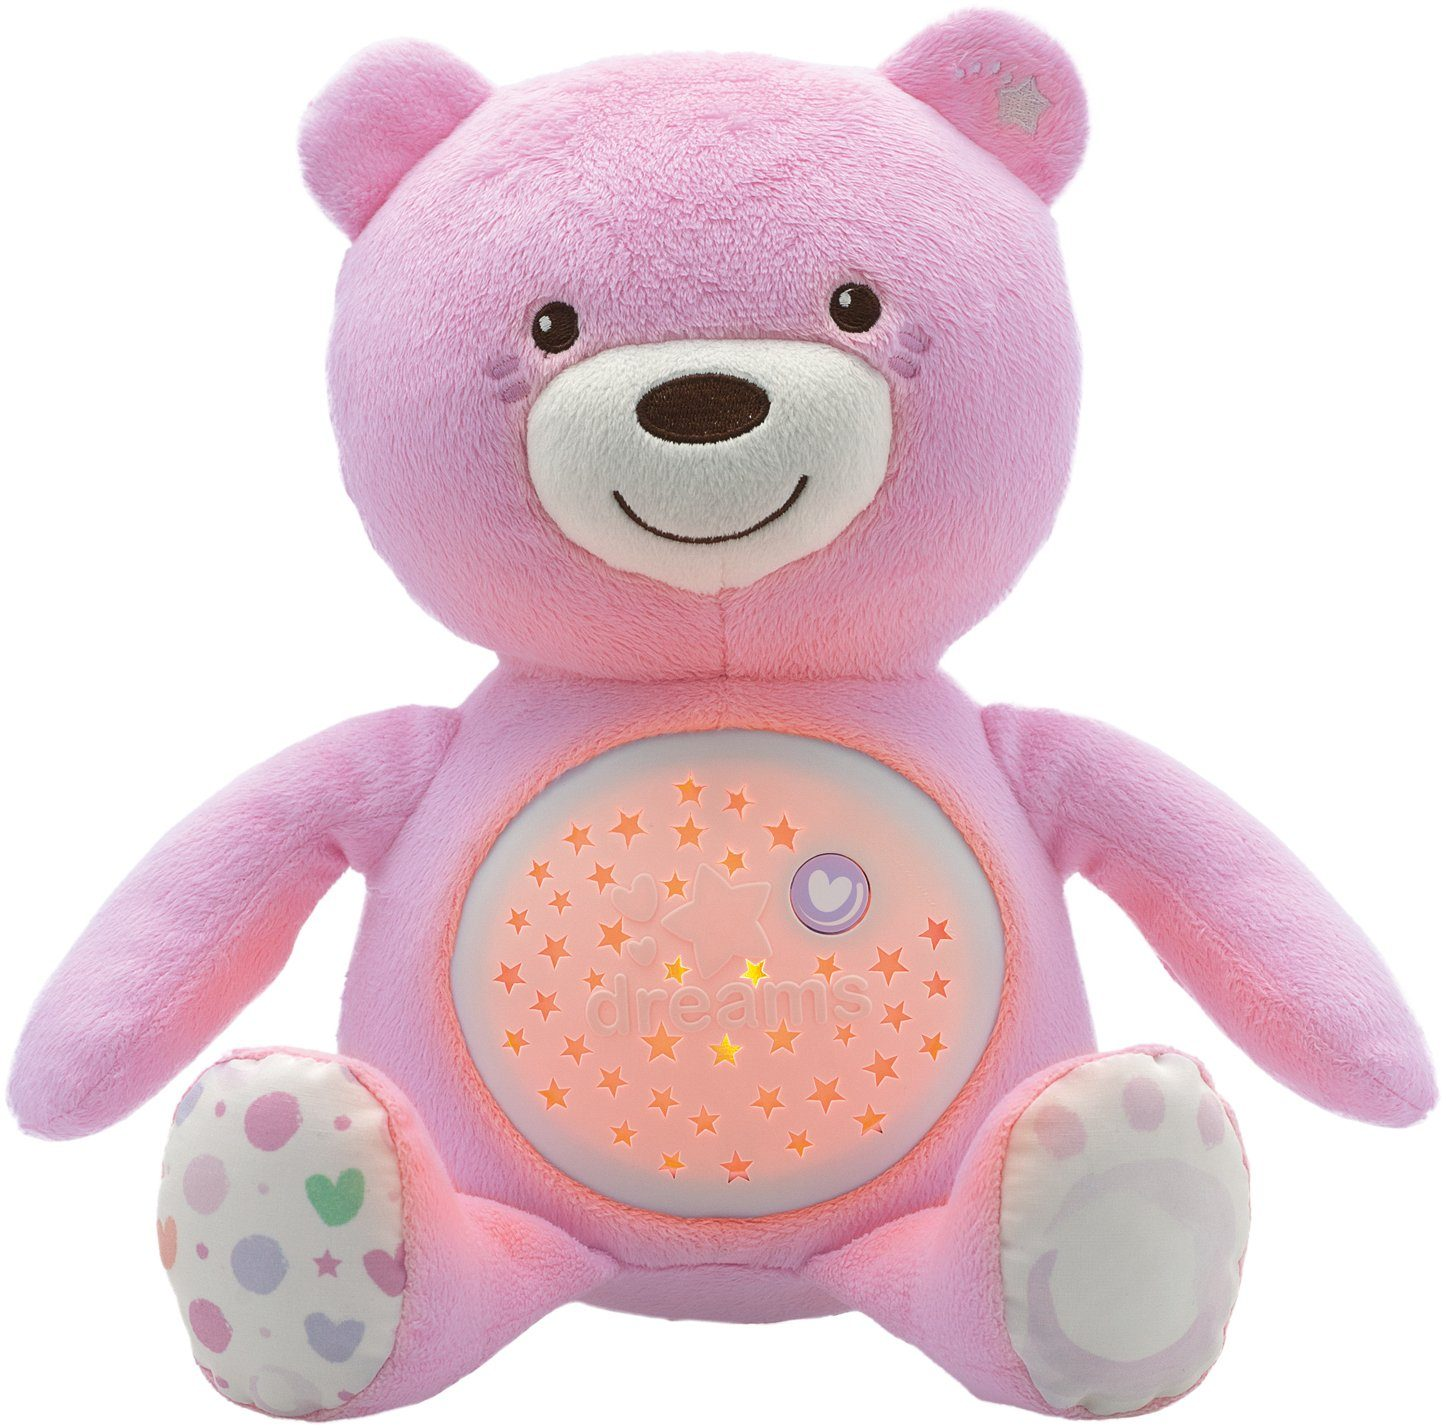 Chicco® Stofftier mit Lichtprojektion und Soundfunktion, ca. 30 cm, »First Dreams Baby Bär, Rosa«